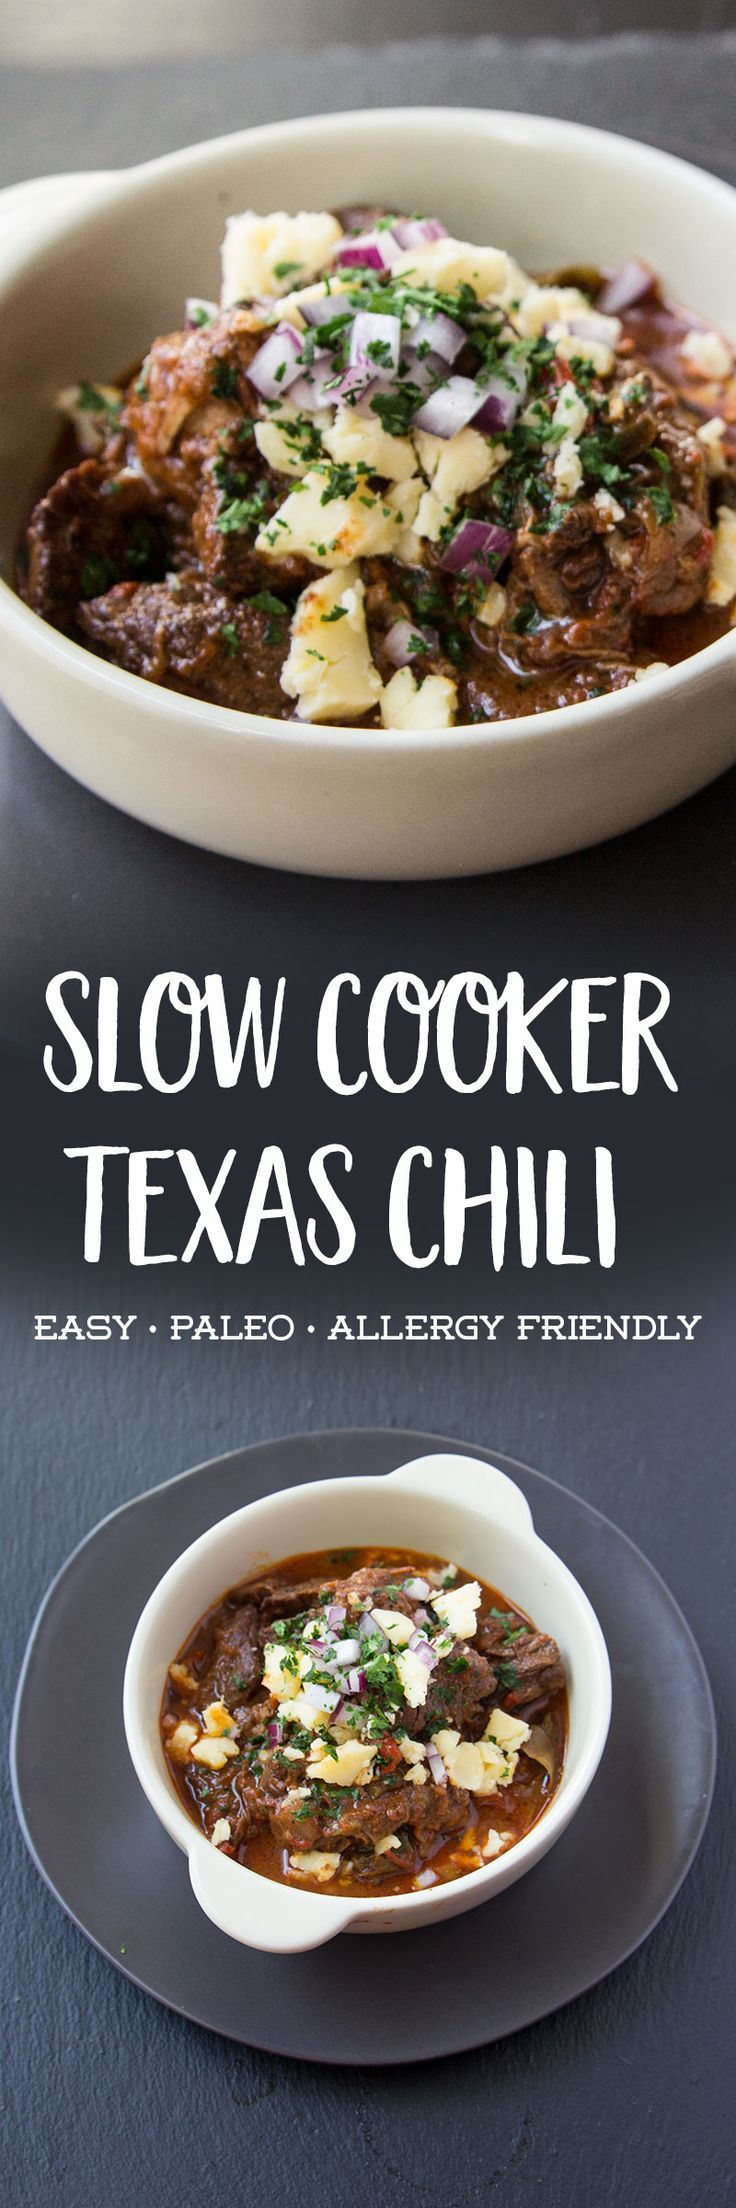 This slow cooker Texas chili is full of healthy grass fed meats, peppers, and…